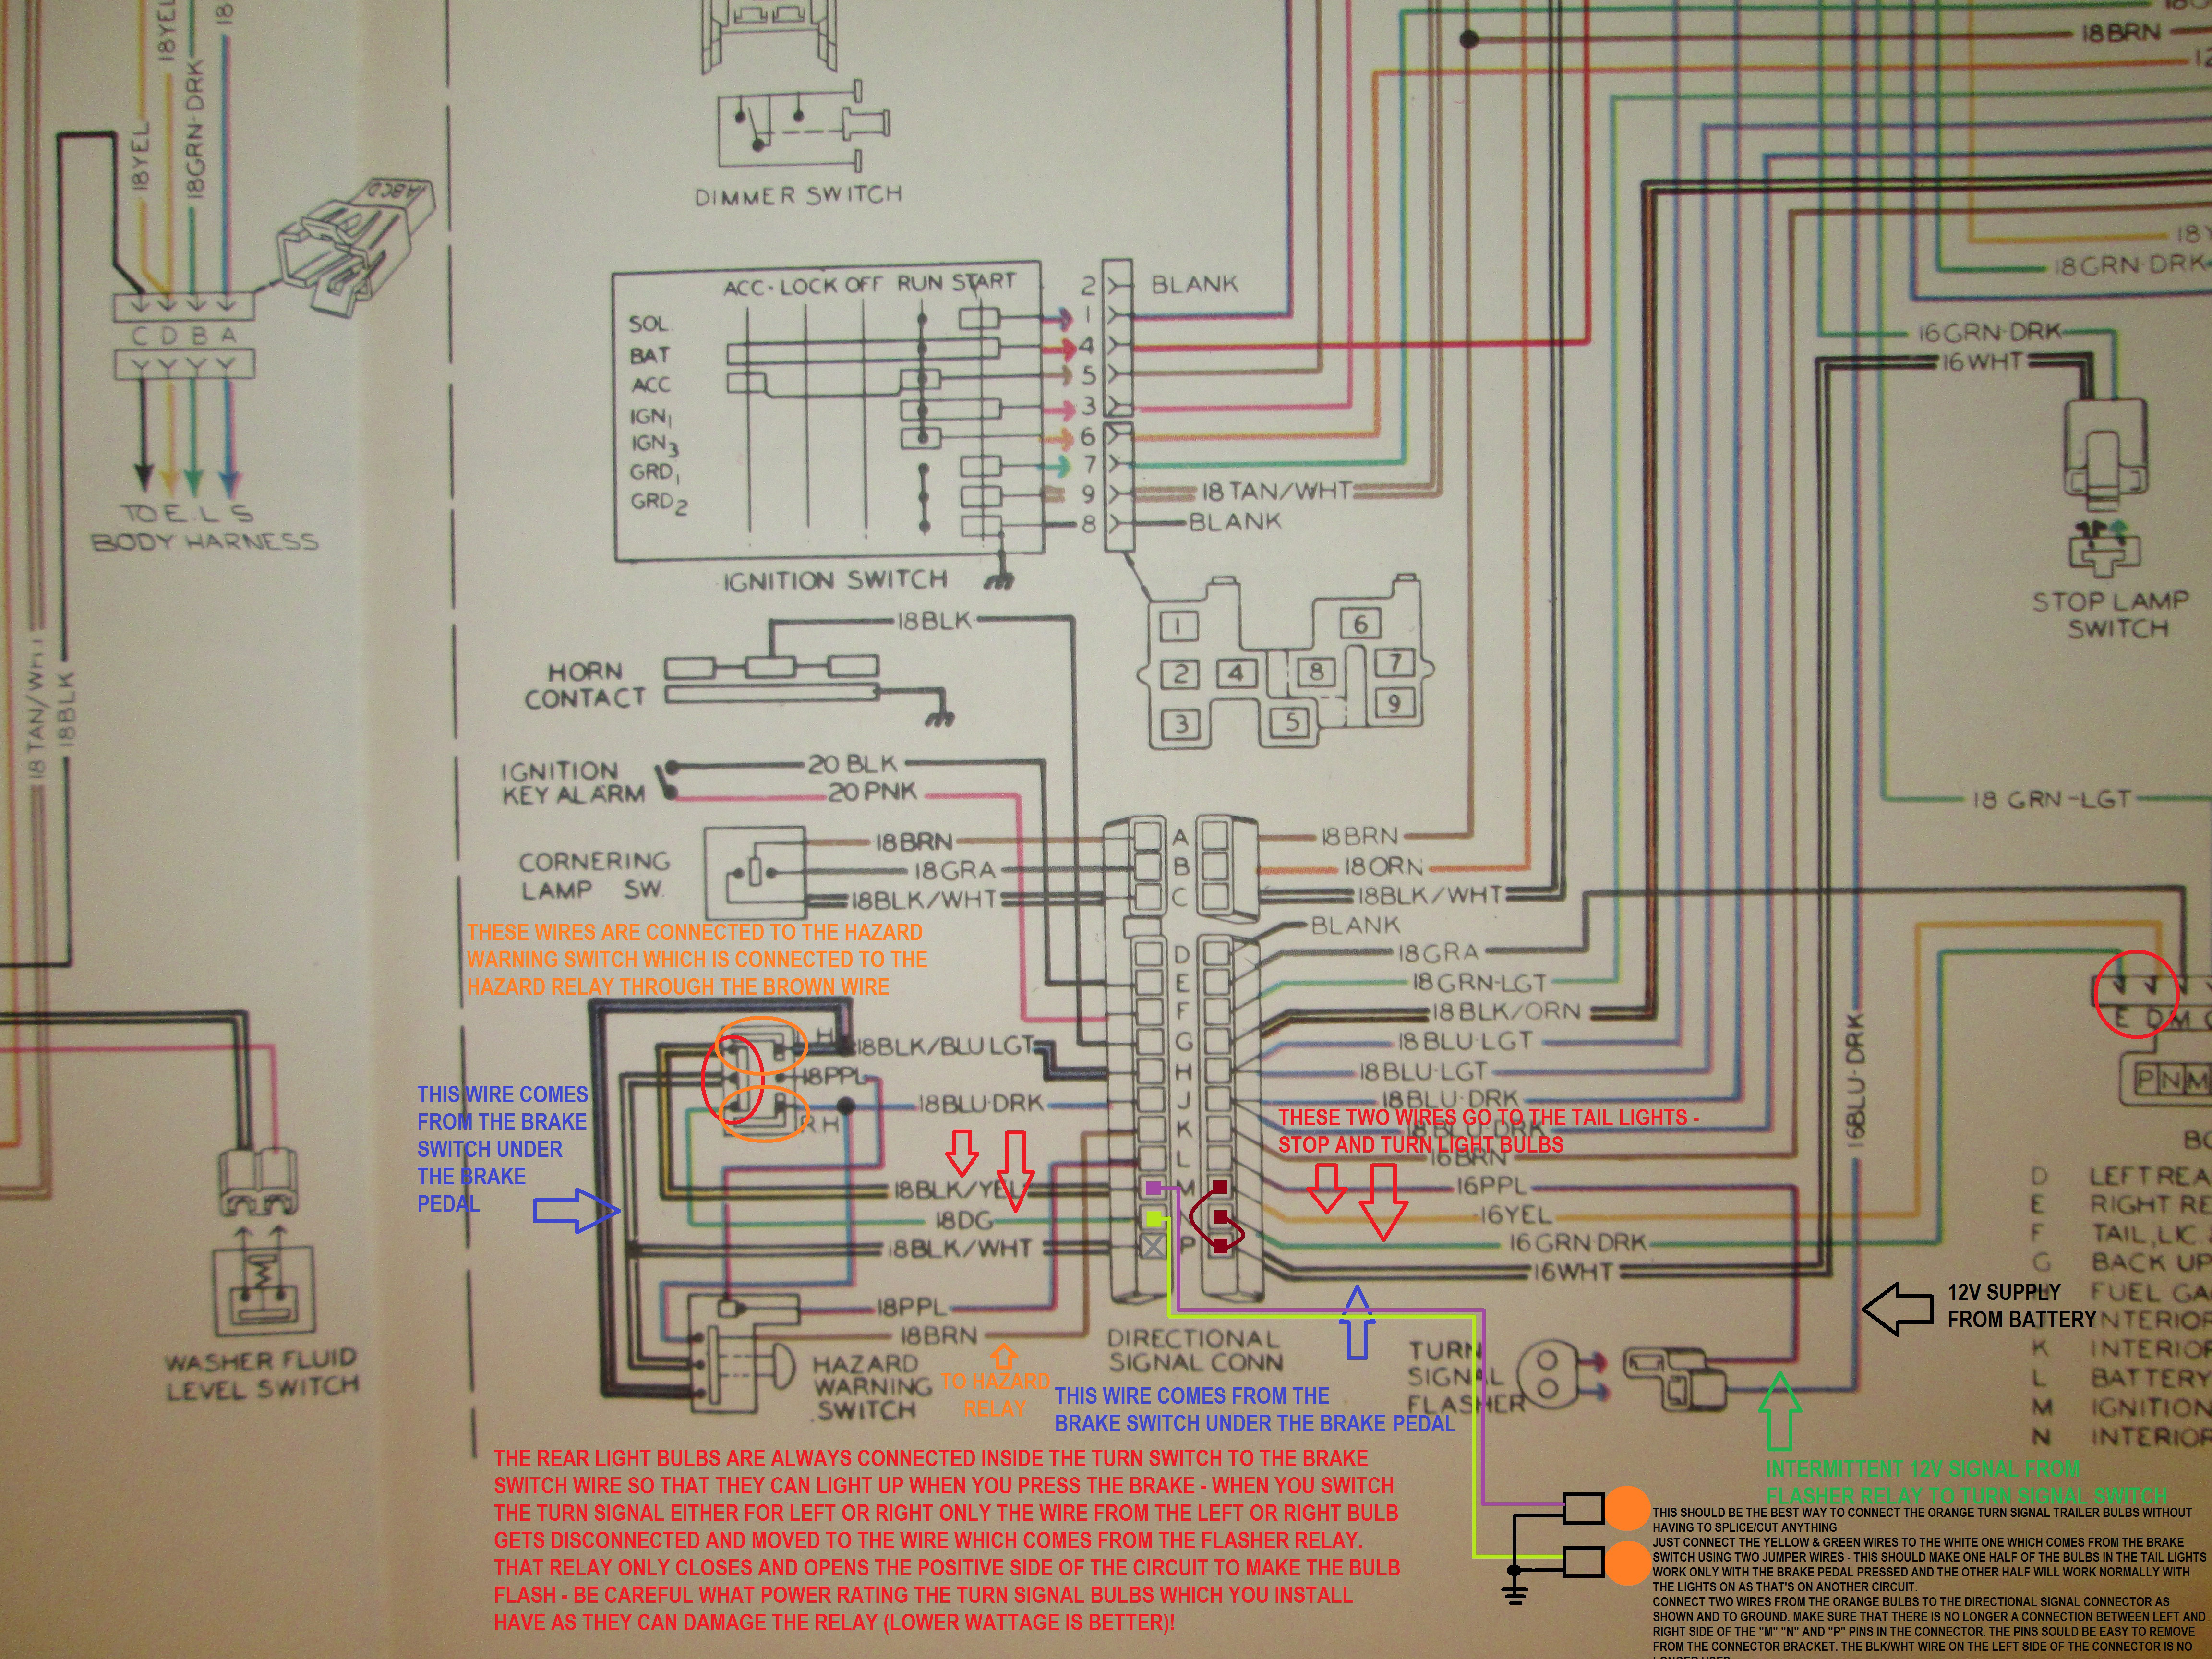 Wiring Diagram Blinker on 1966 Lincoln Continental Wiring Diagram